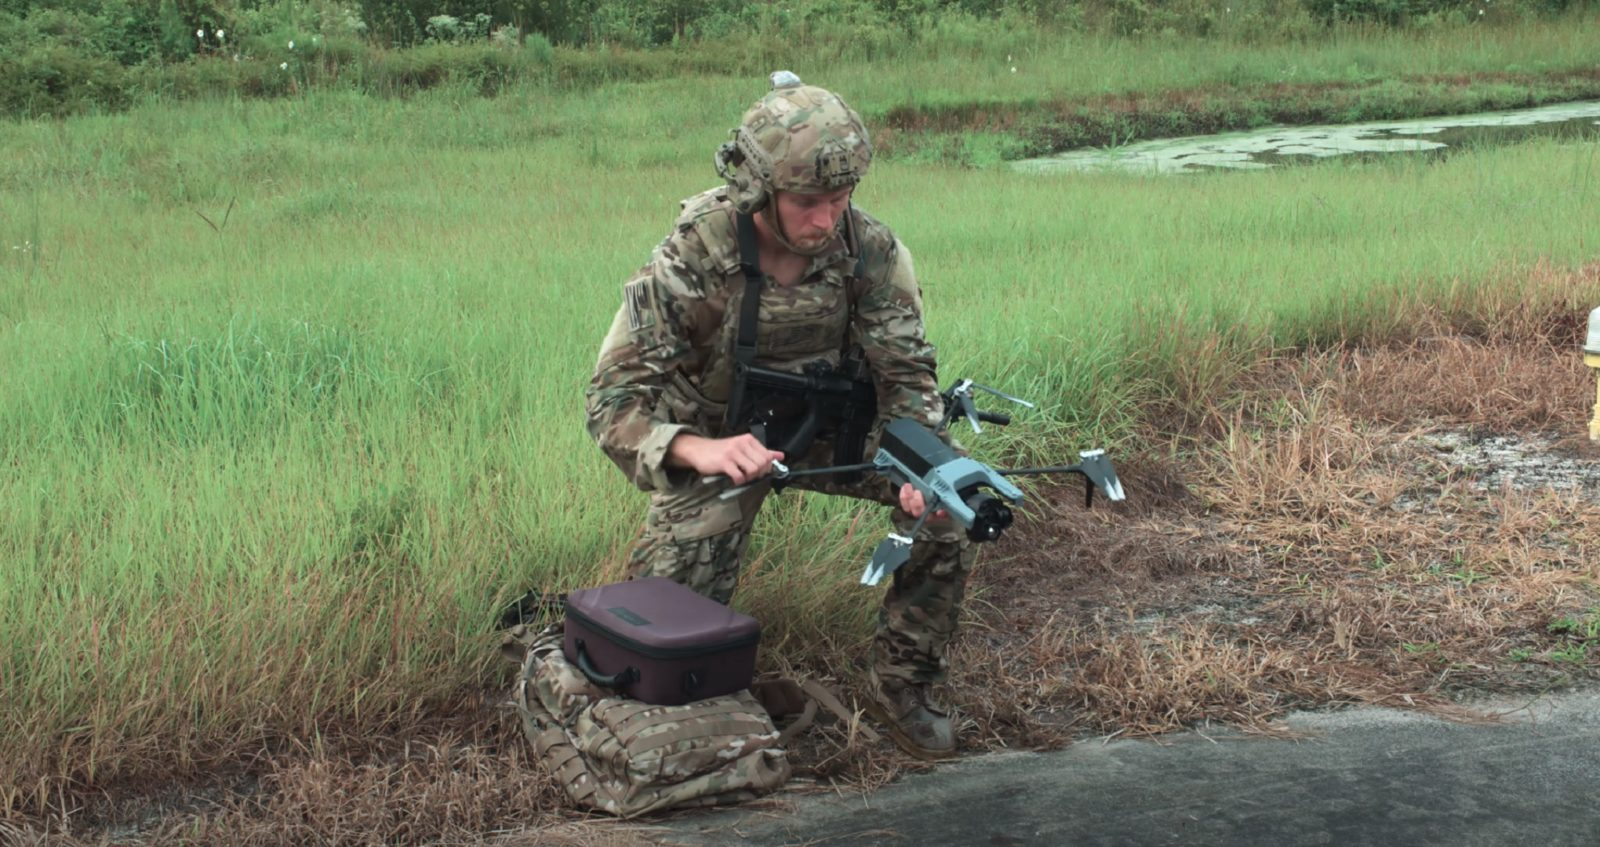 ion-m640x-is-an-american-made-tactical-quadcopter-built-for-special-missions